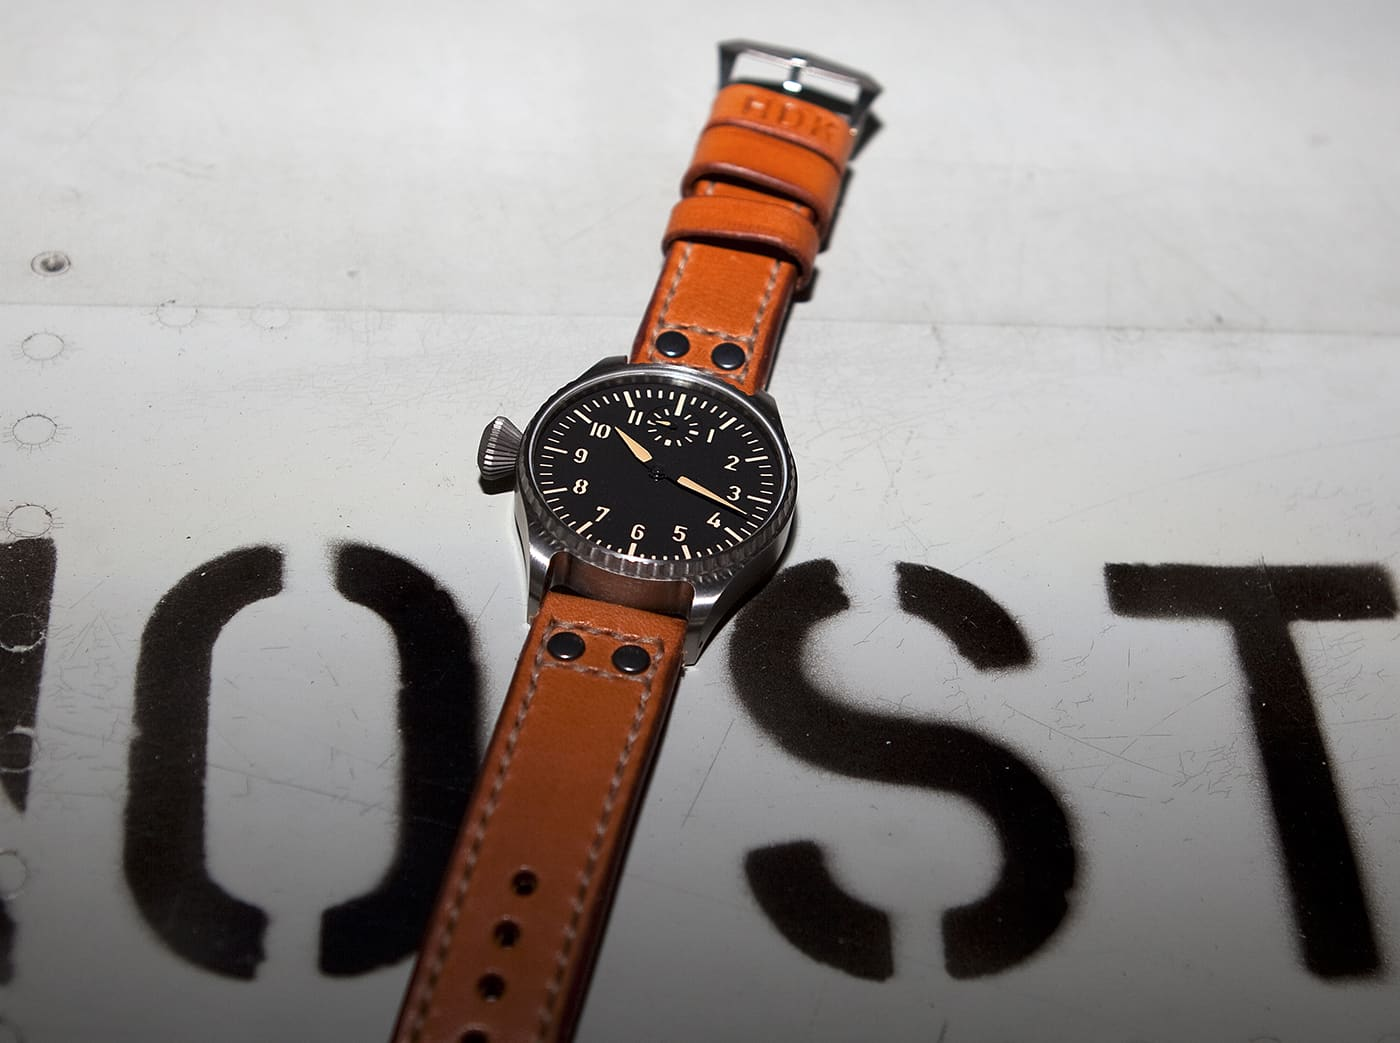 The P1lot One...a watch created and released by a forum